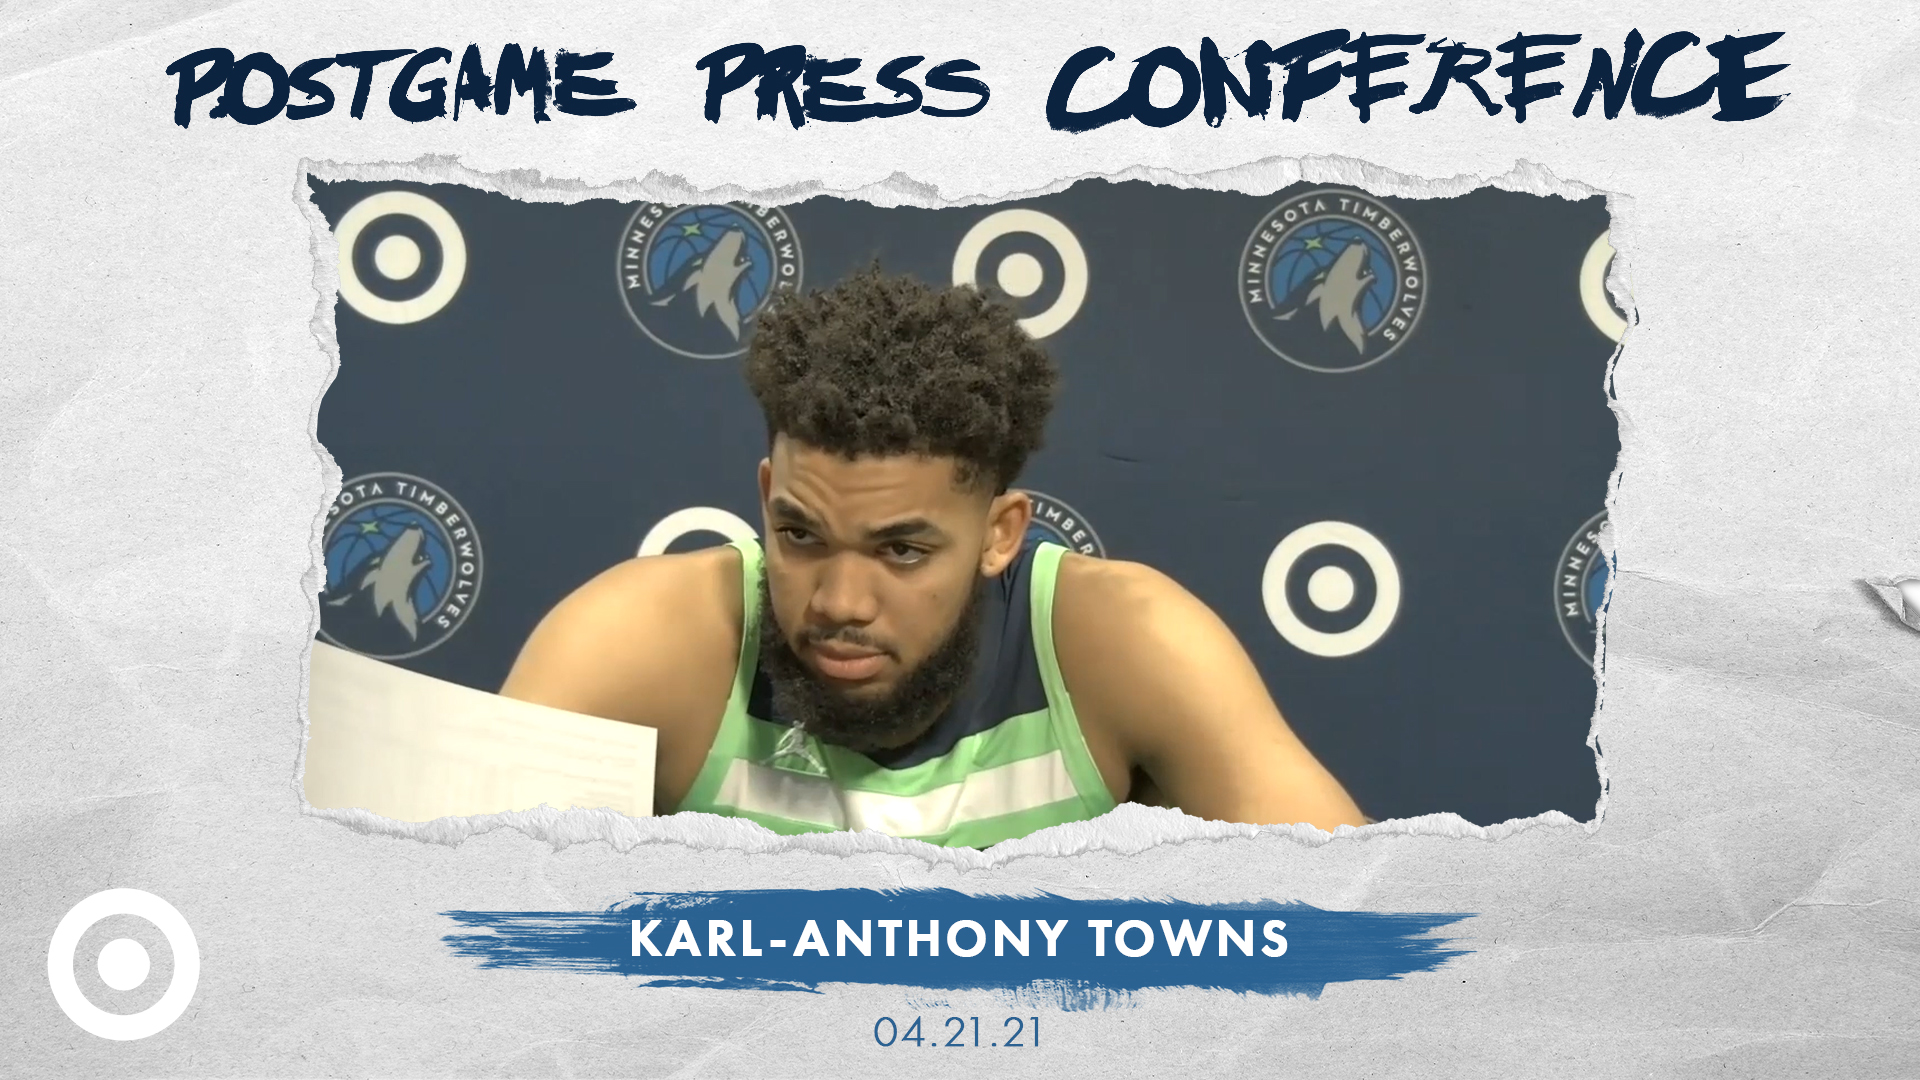 Karl-Anthony Towns Postgame Press Conference - April 21, 2021